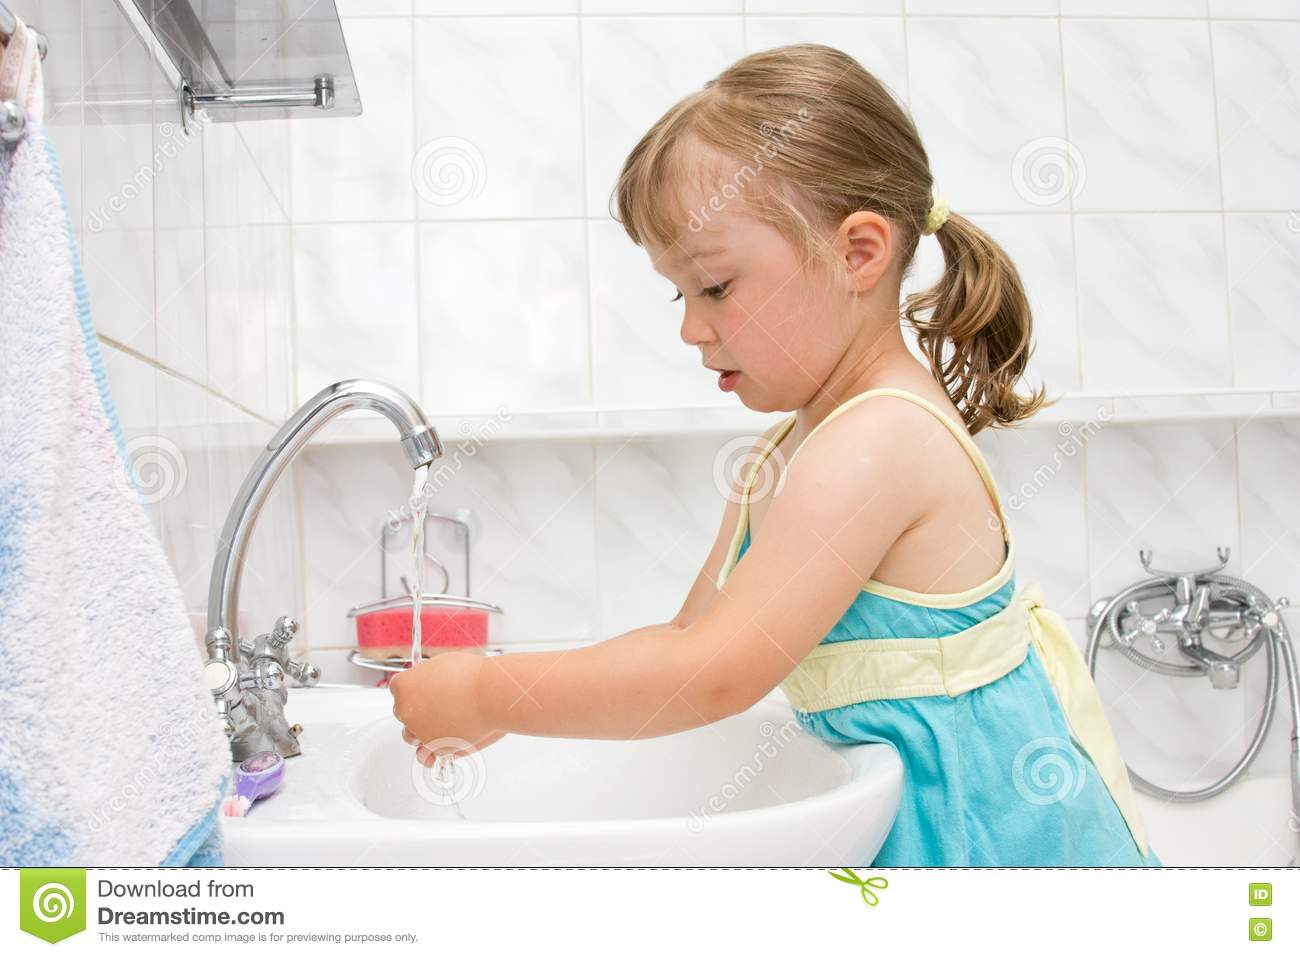 Little Girl Bathroom Little Girl In Bathroom Stock Image Image 15139351